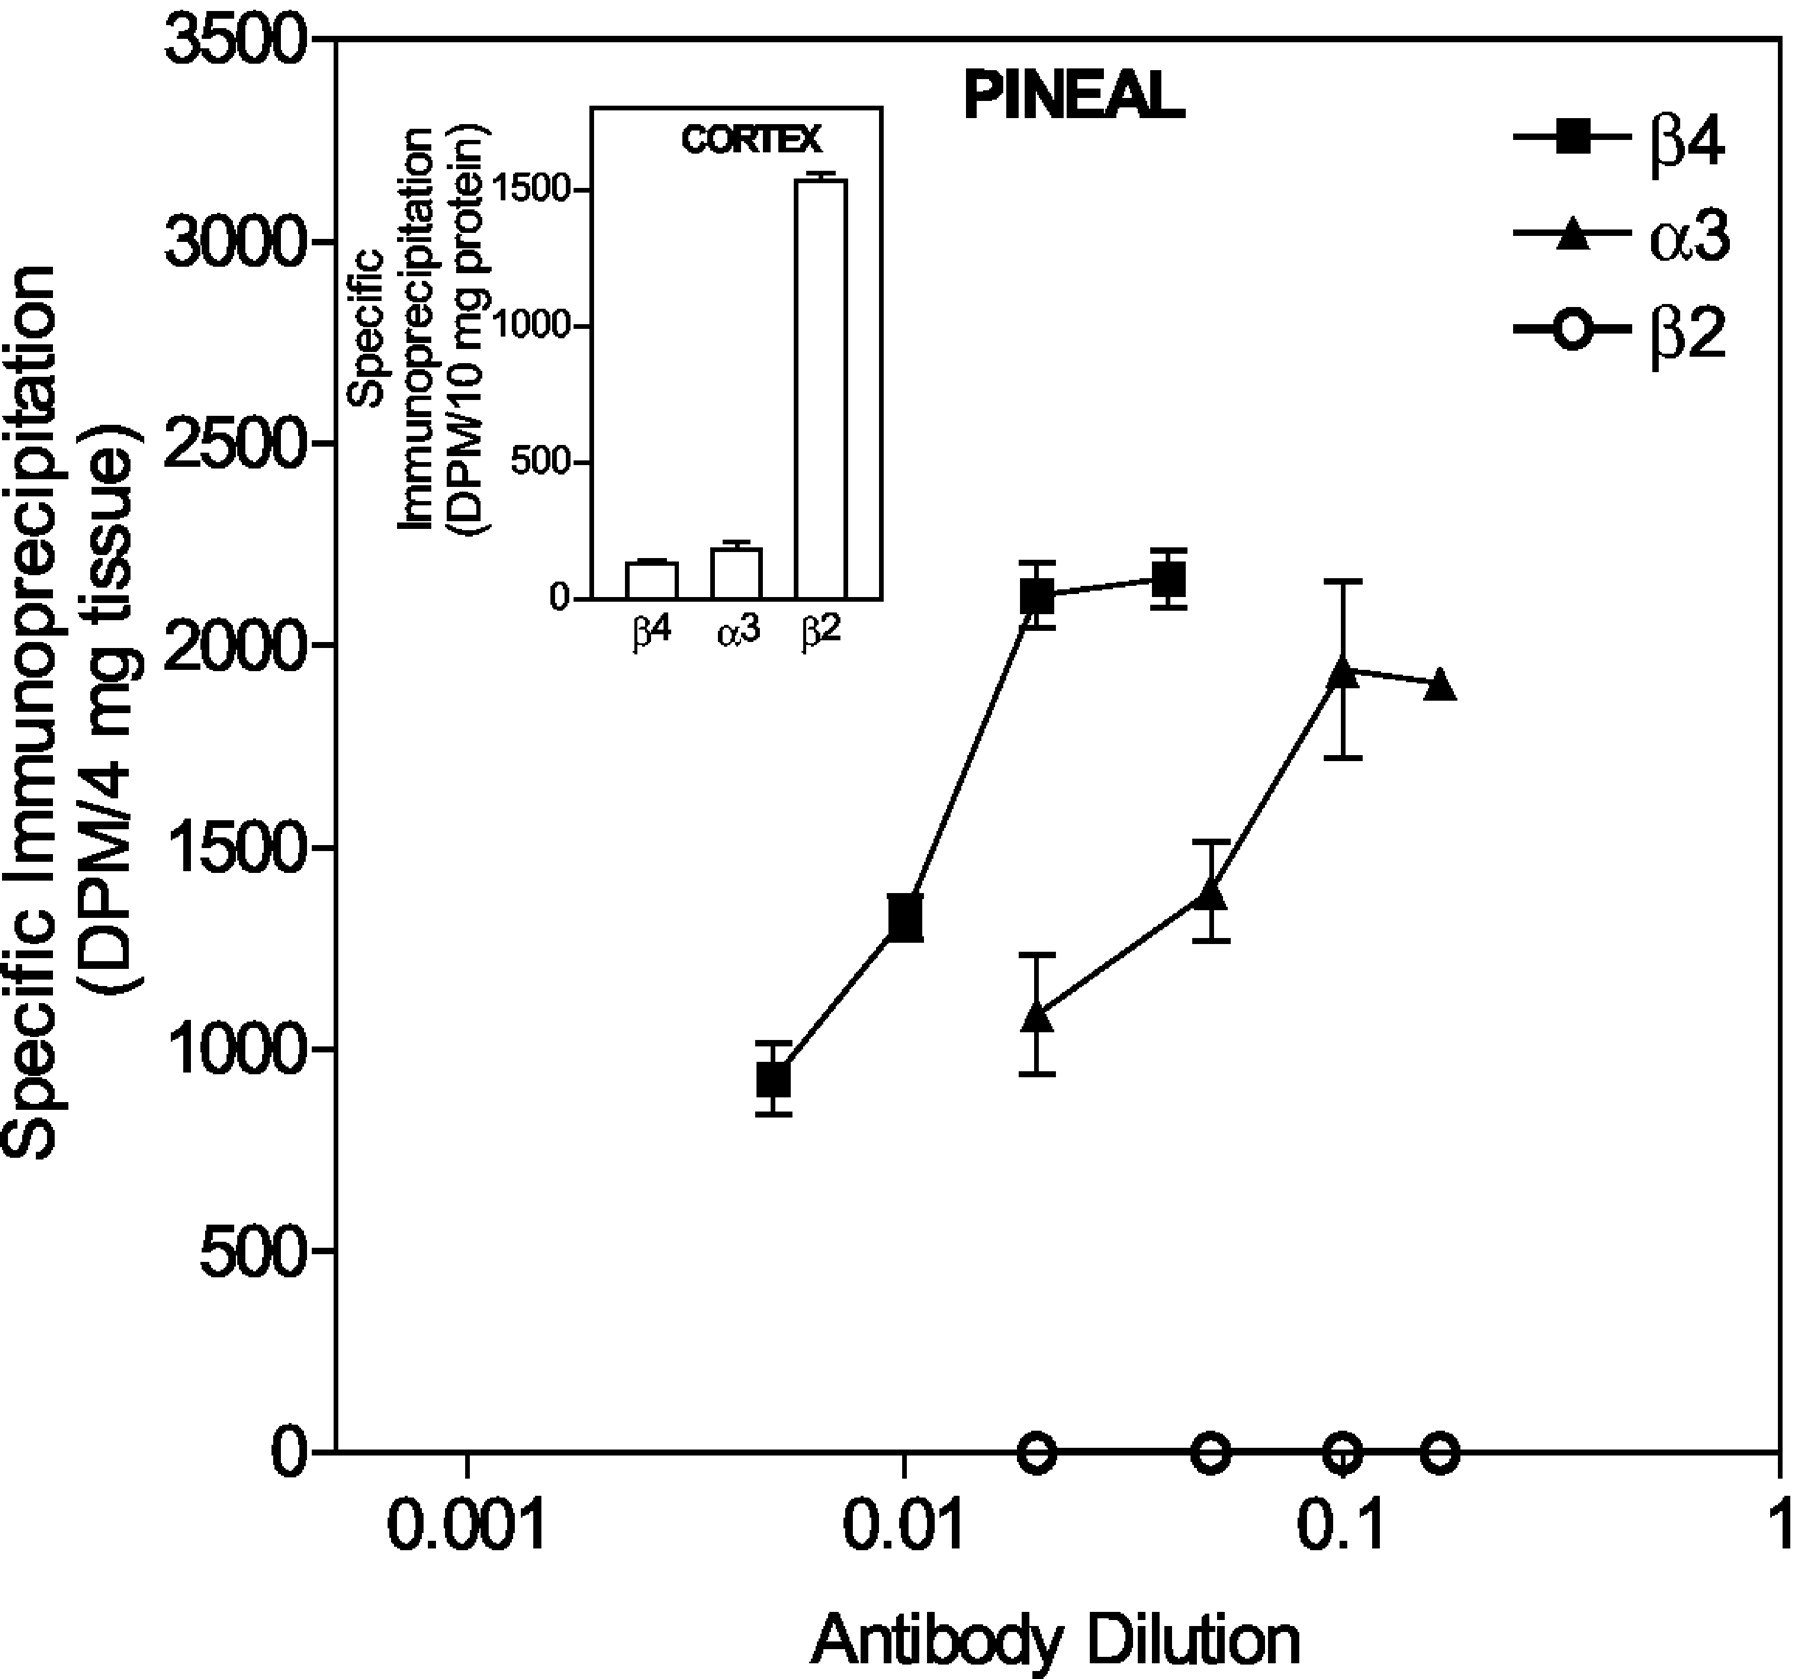 The Nicotinic Receptor In The Rat Pineal Gland Is An 34 Subtype